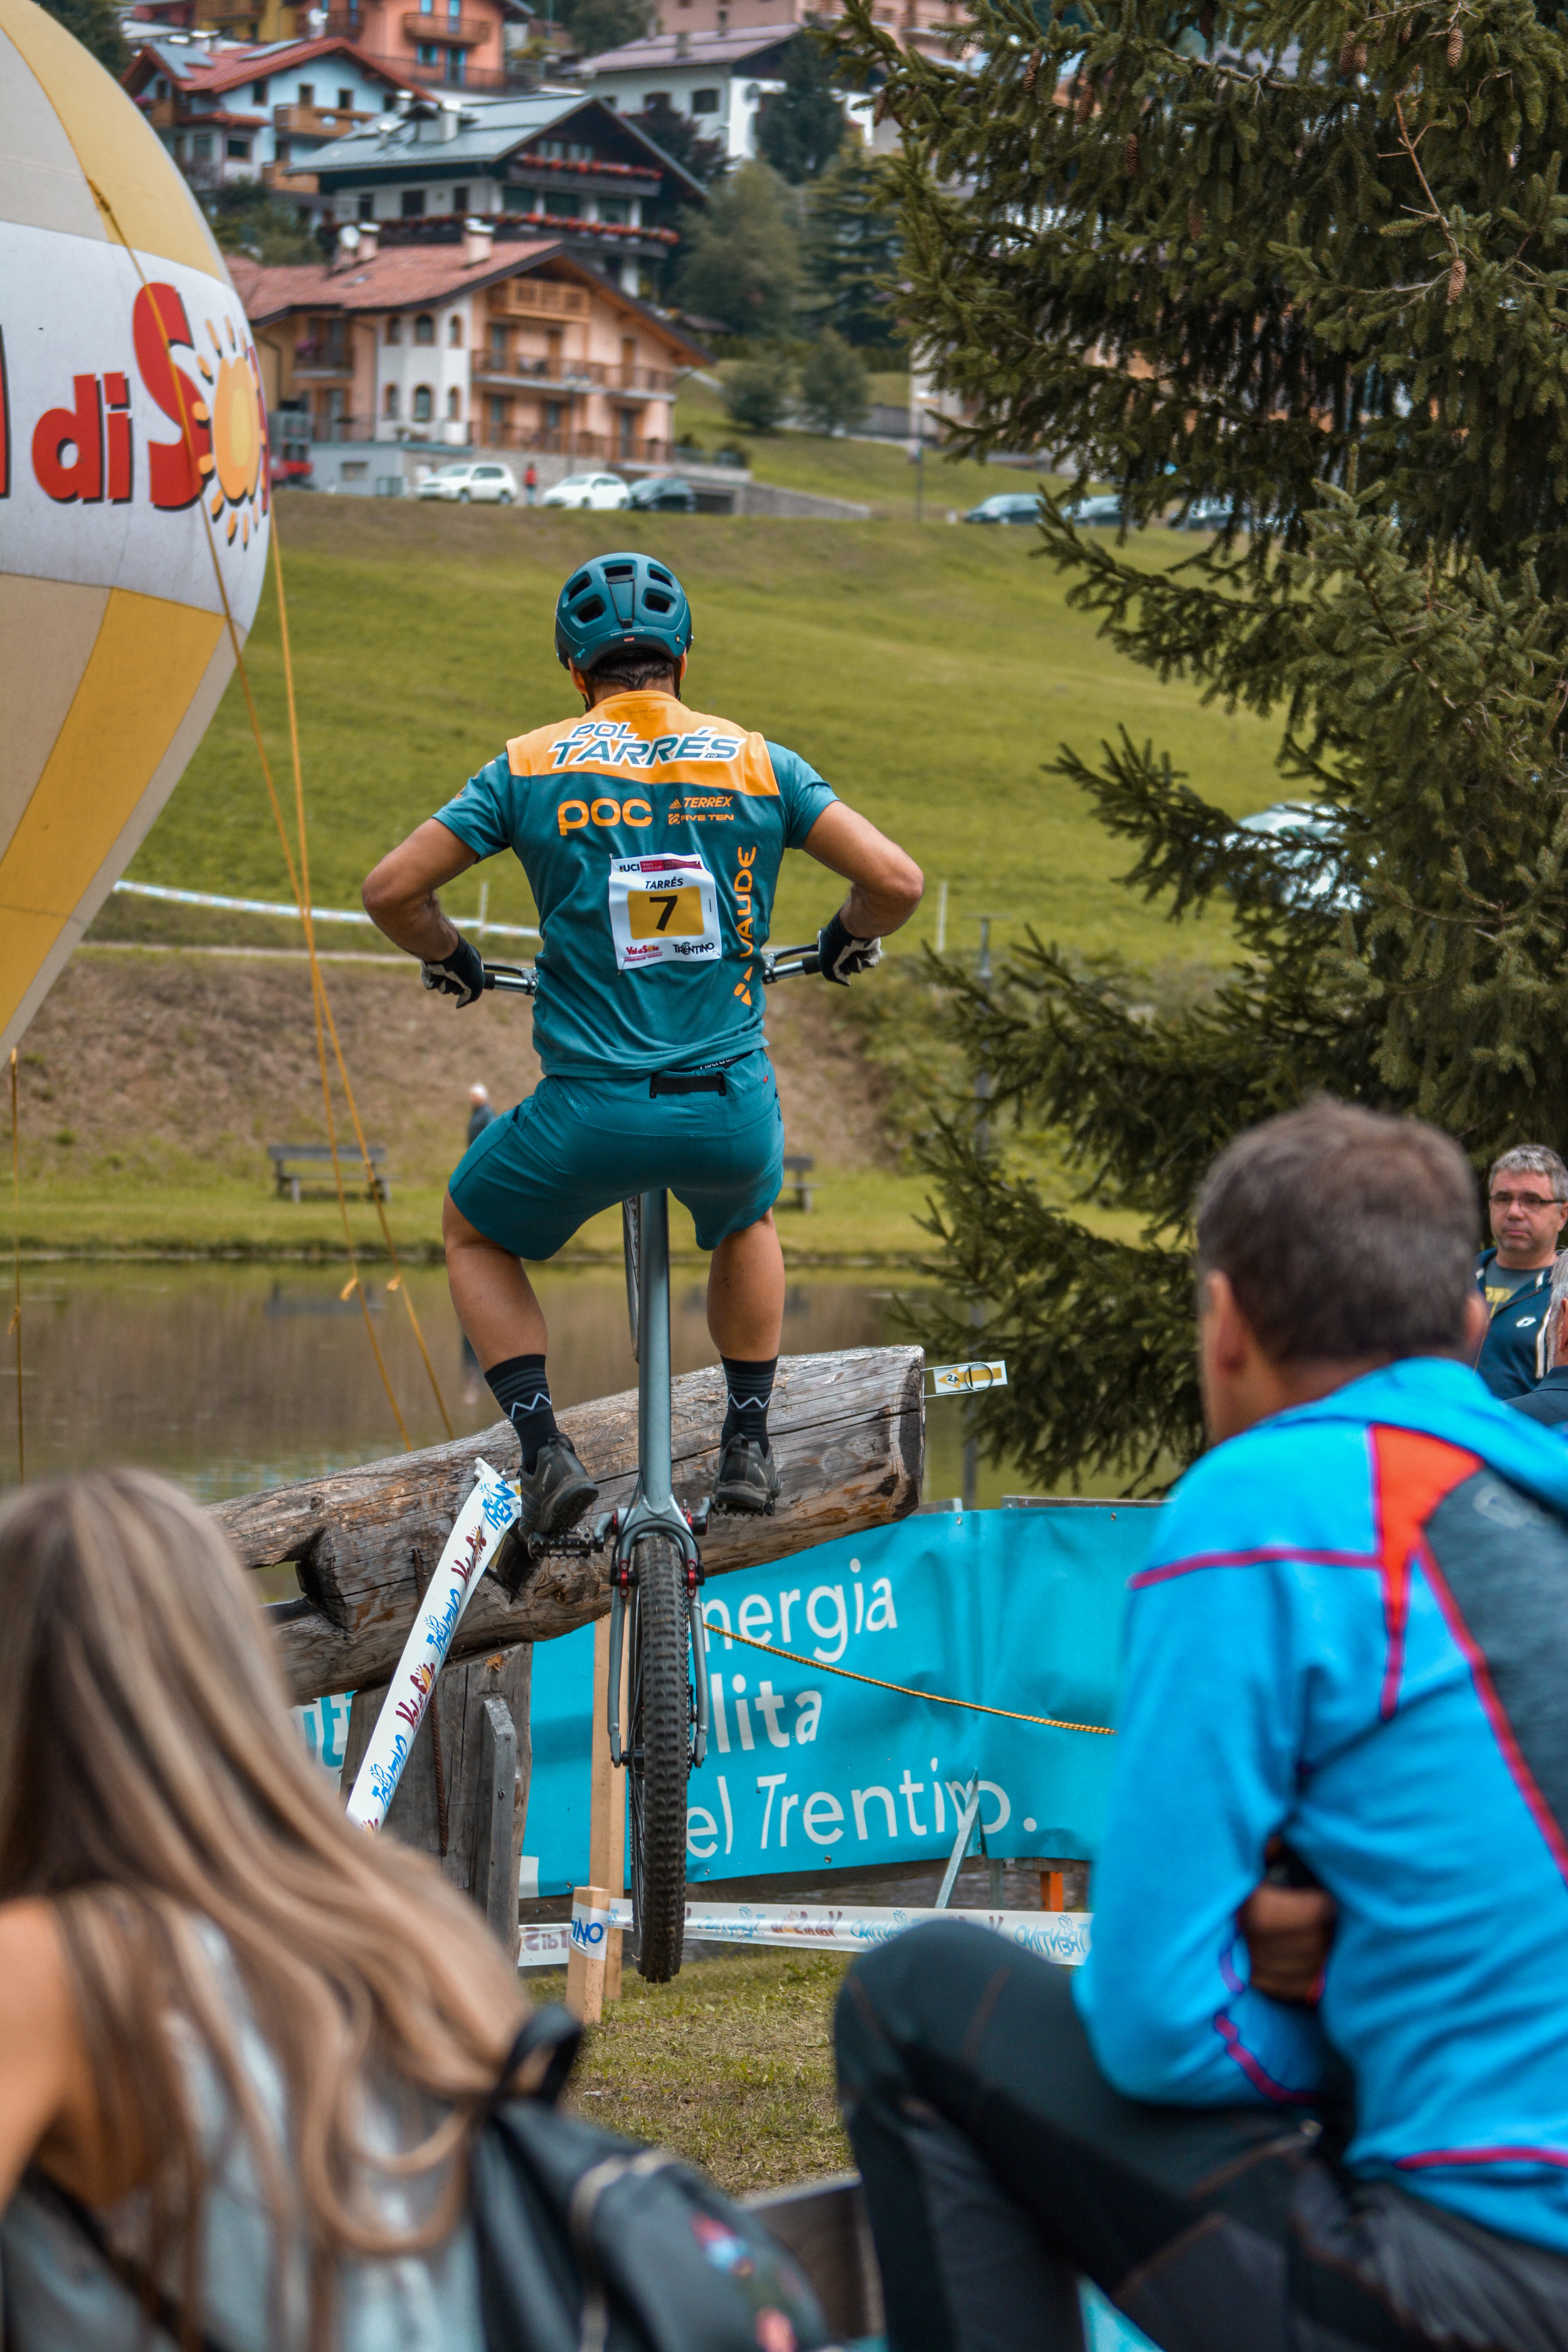 pol_tarres_blog_uci_world_cup_val_di_sole_2019-19.jpg